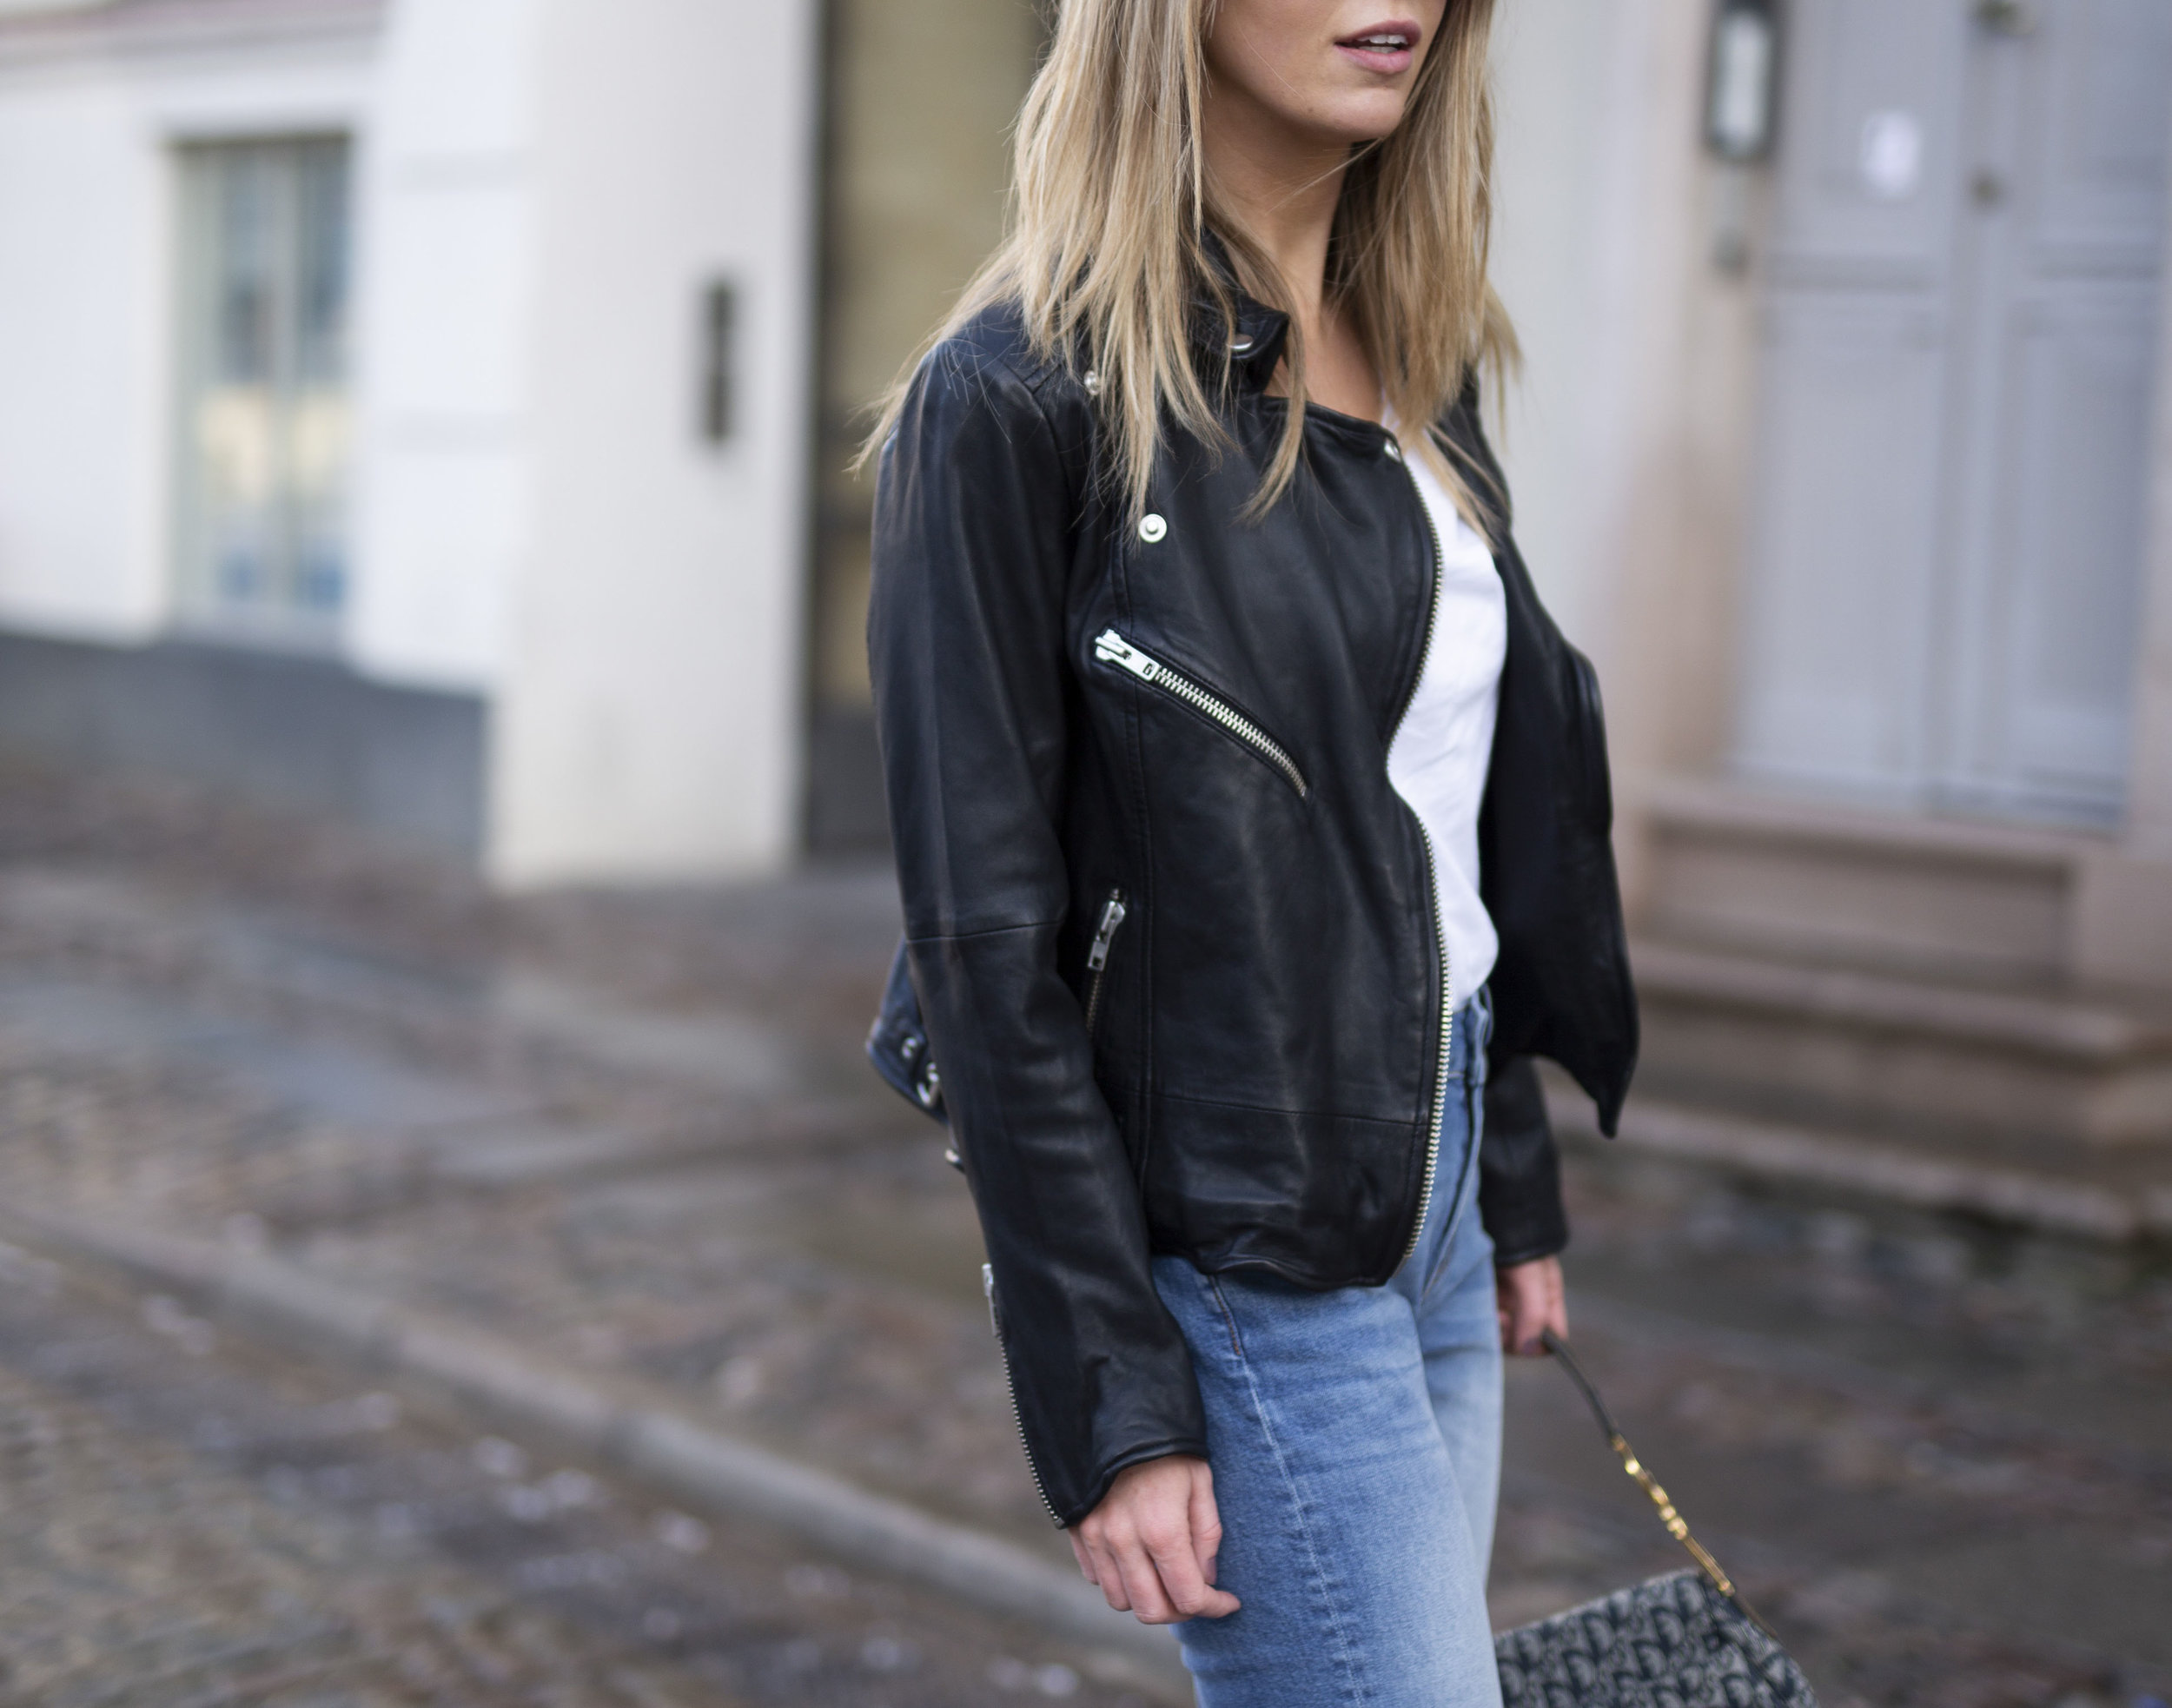 Cathrine Marie walking on the streets of Copenhagen wearing Denim Hunter clothes